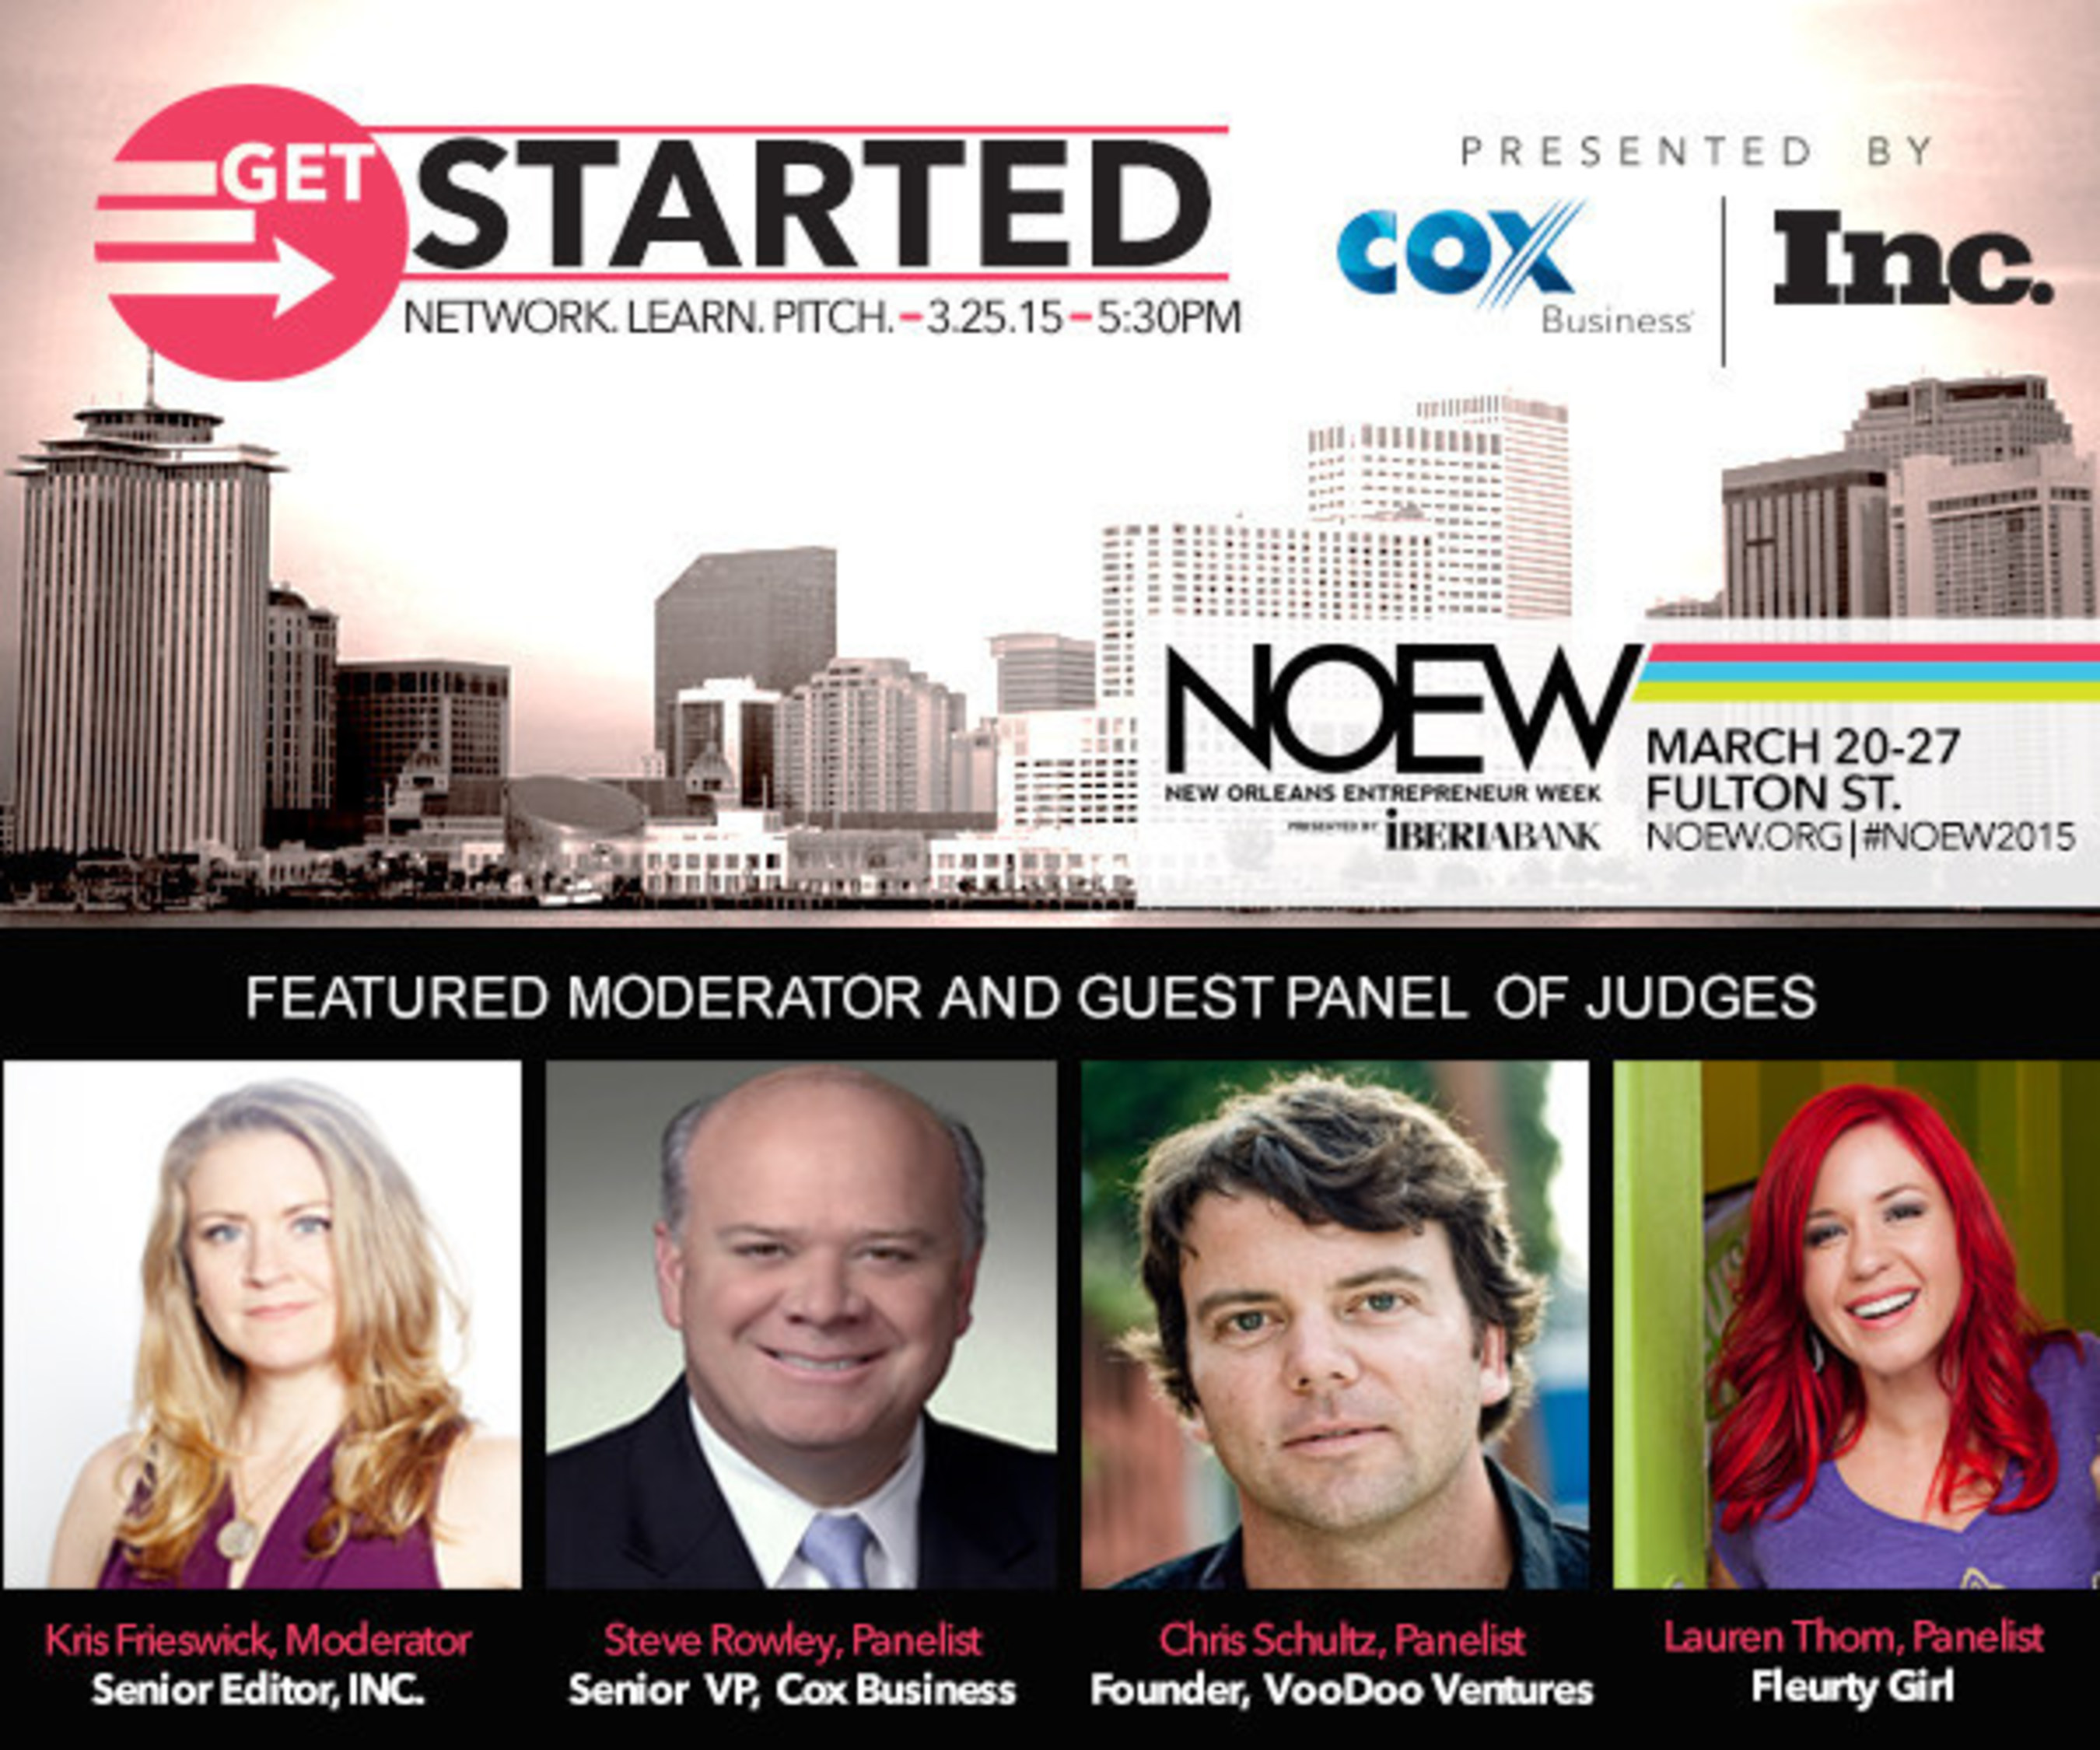 Cox Business and Inc. Magazine Call for Contestants at Get Started NOLA